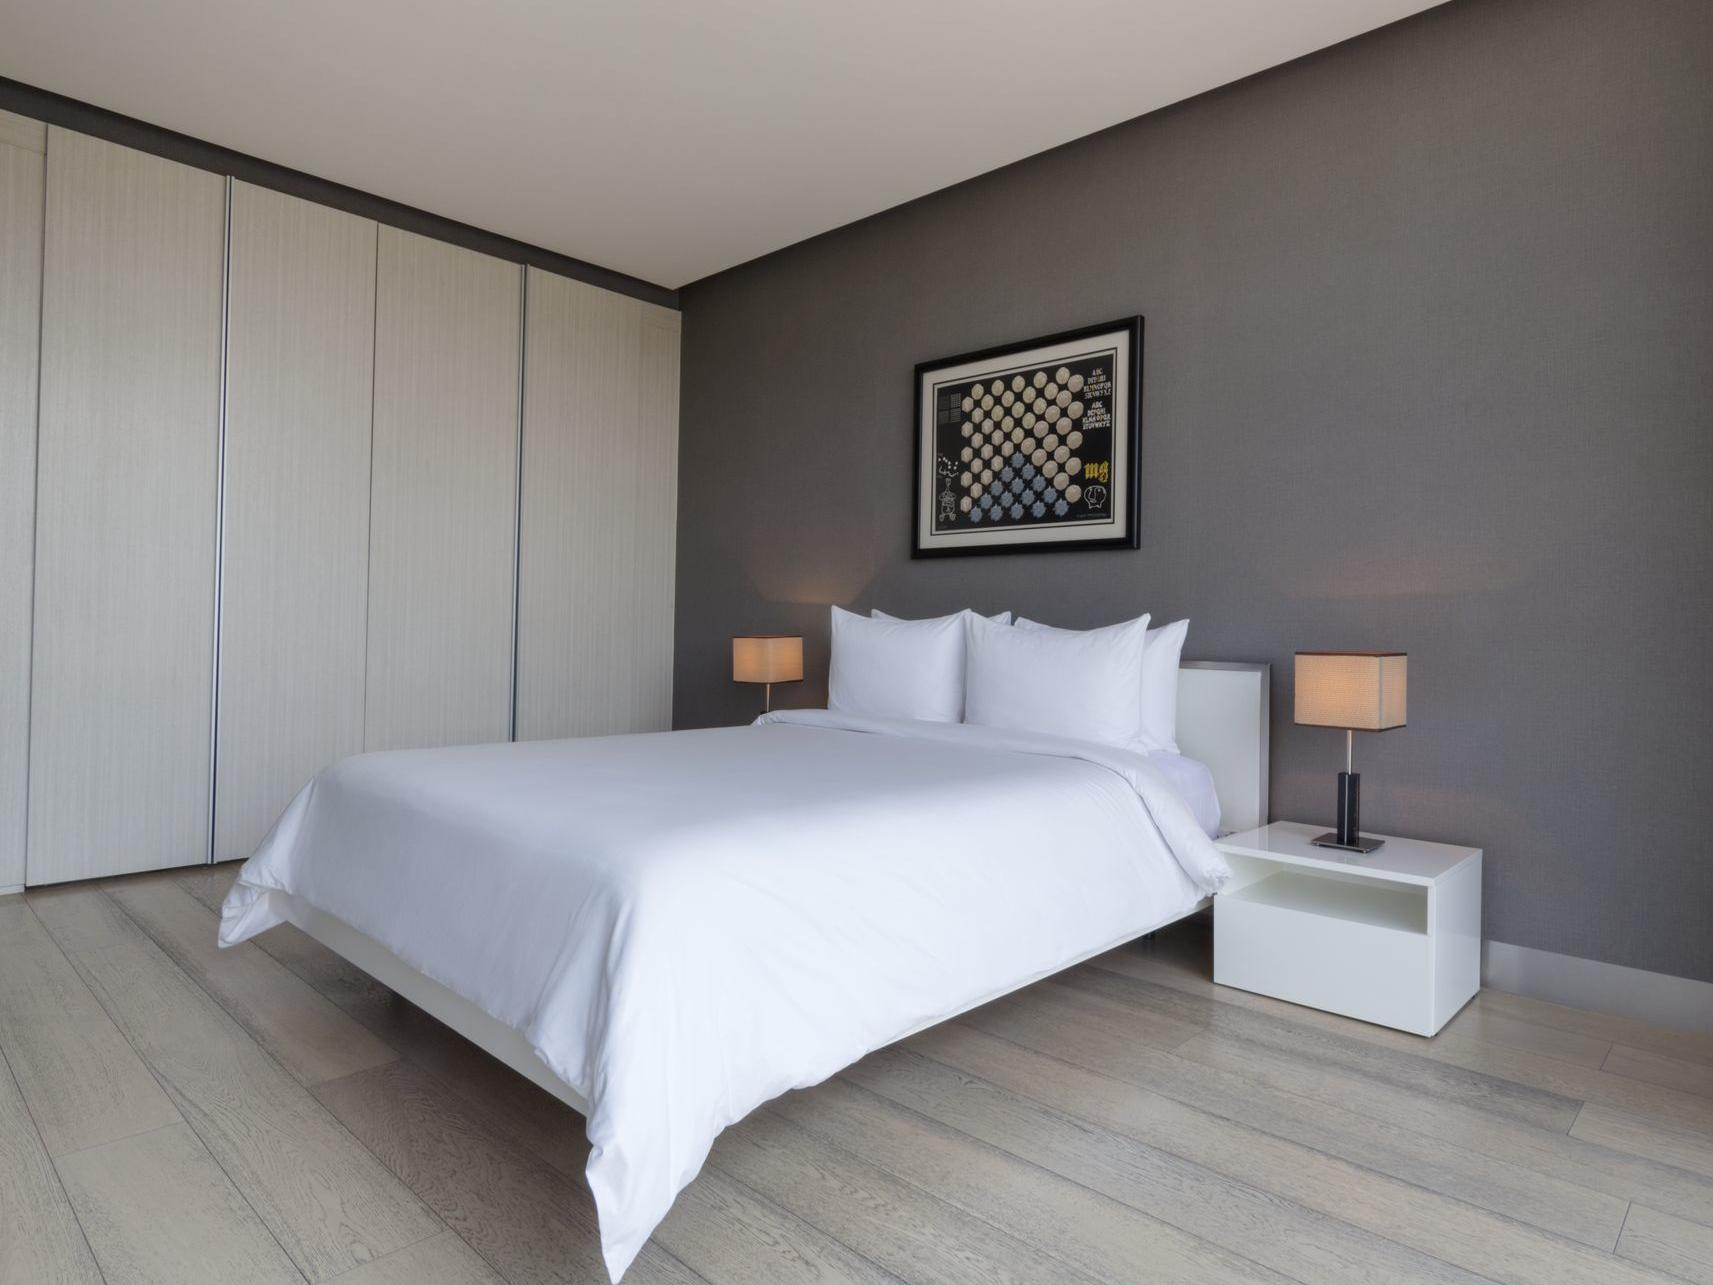 bed with white sheets in large room